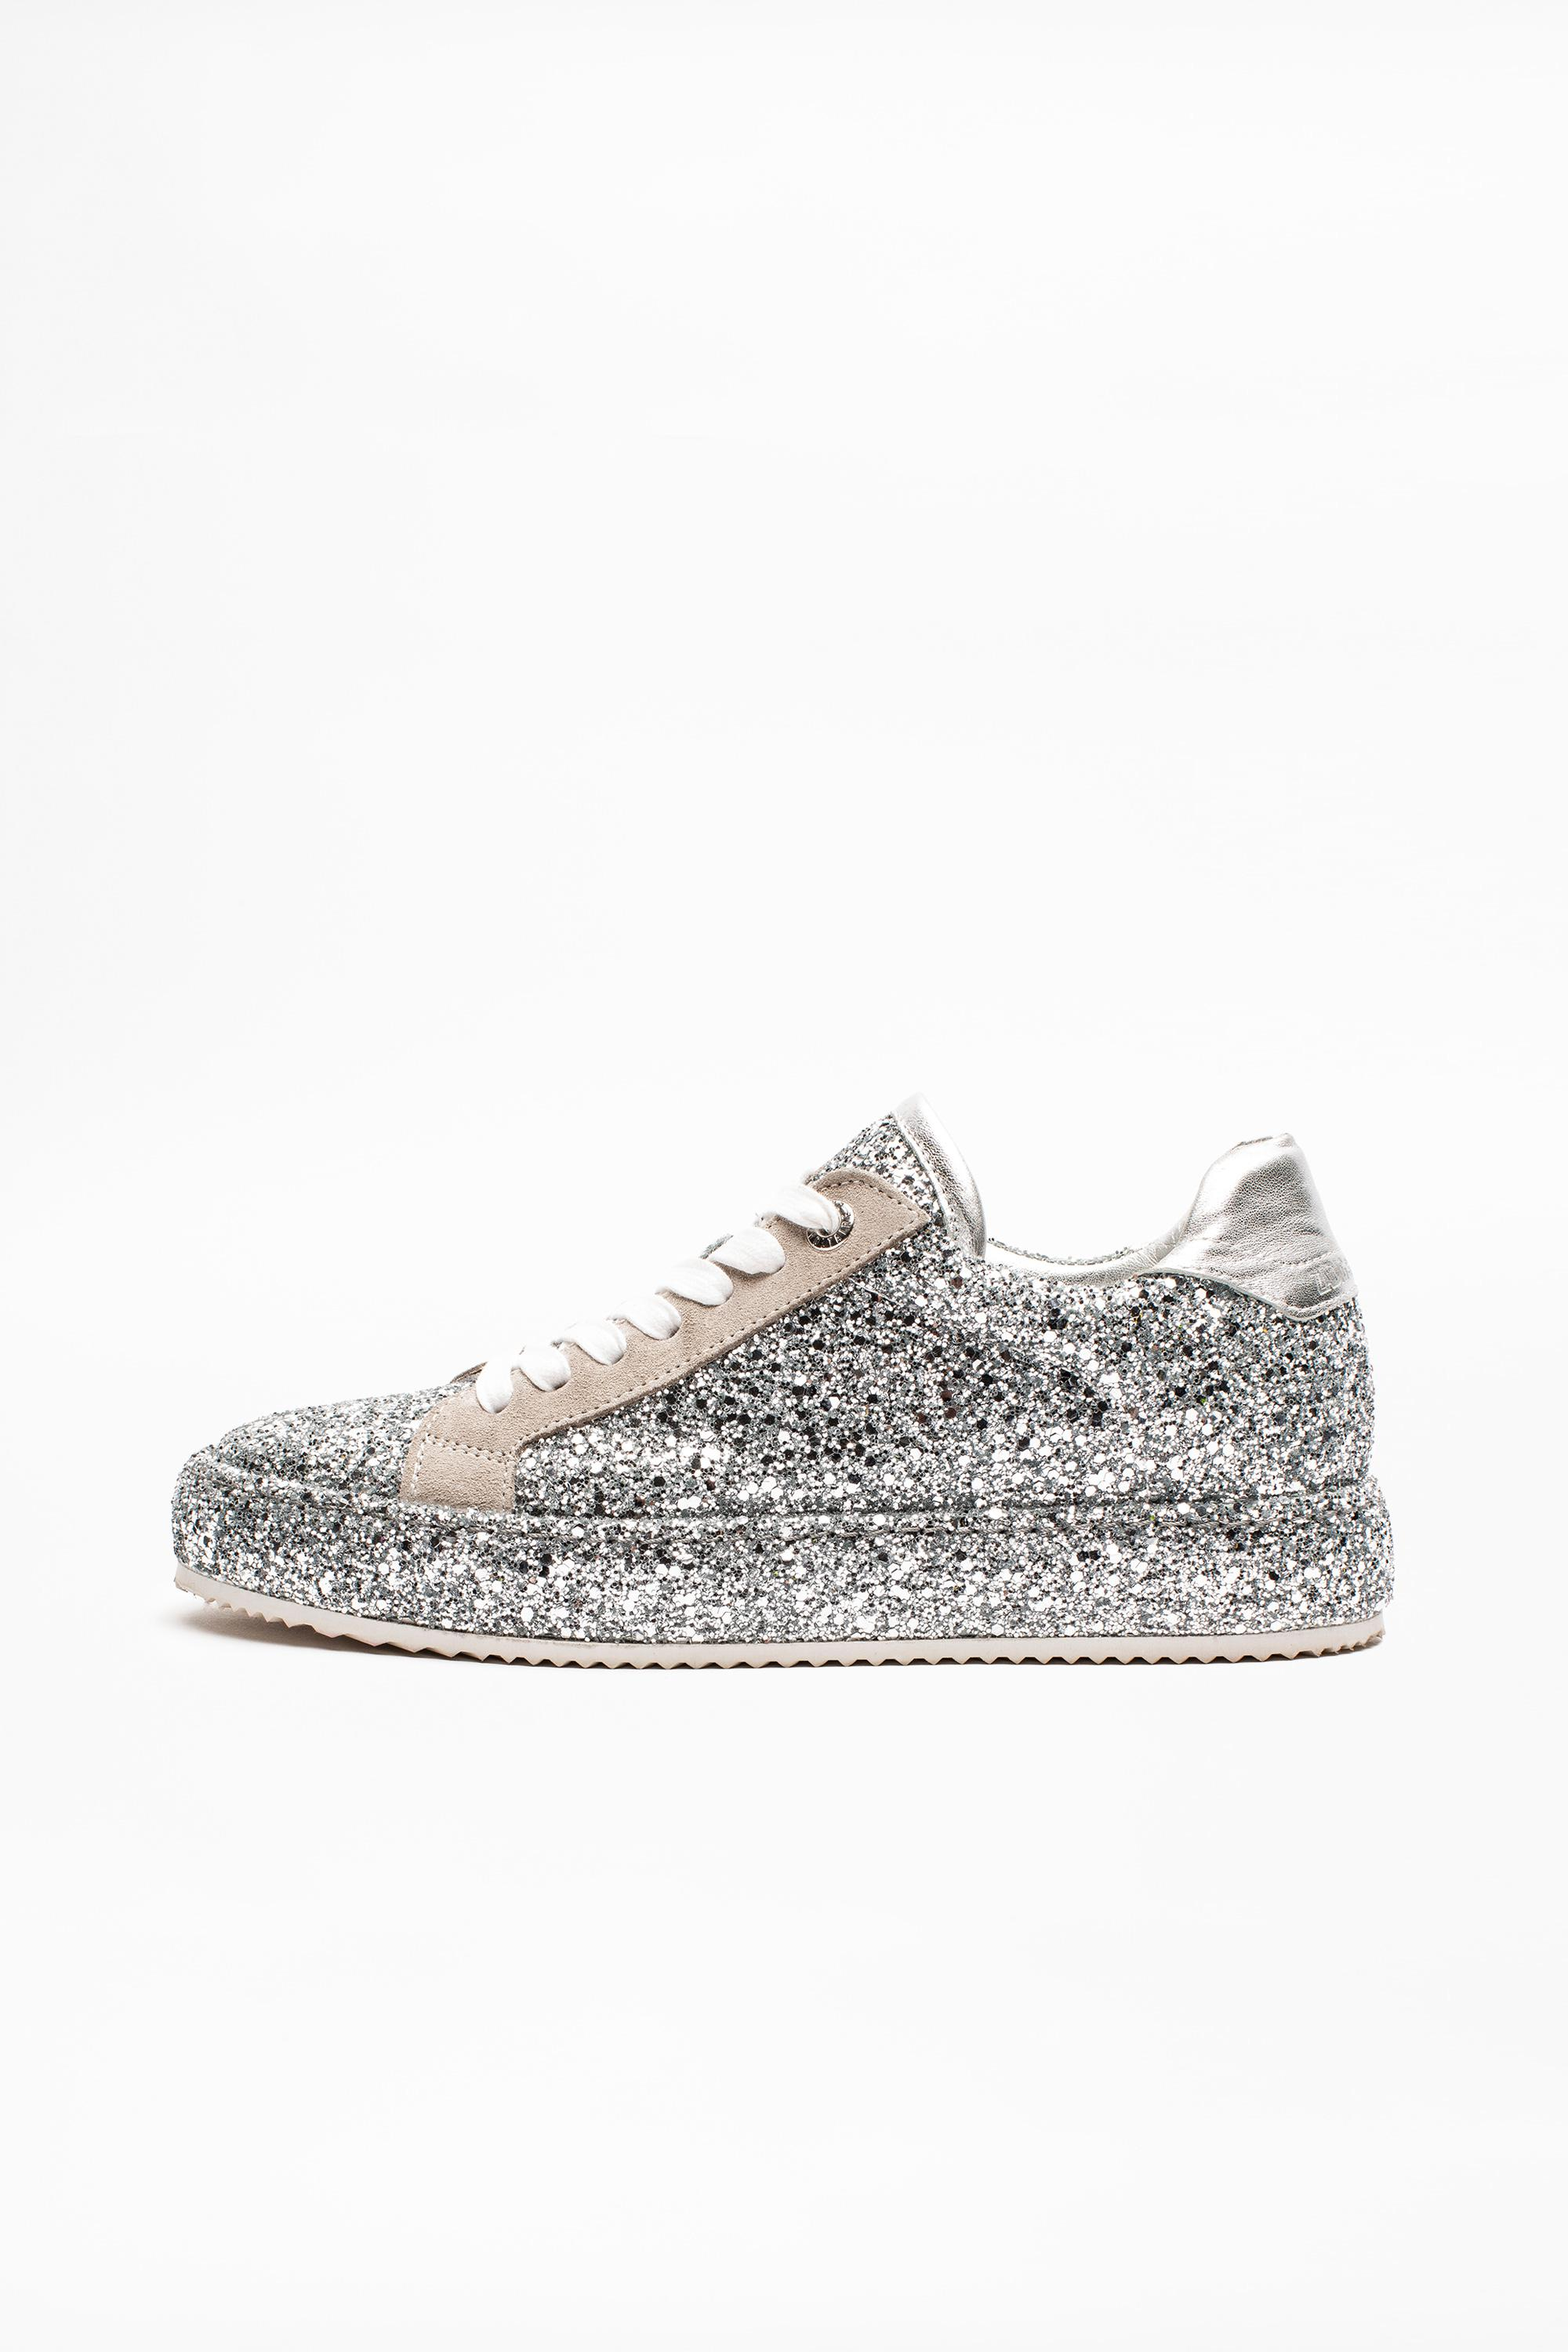 Zadig & Voltaire Women's ZV1747V Dream Lace Up Sneakers